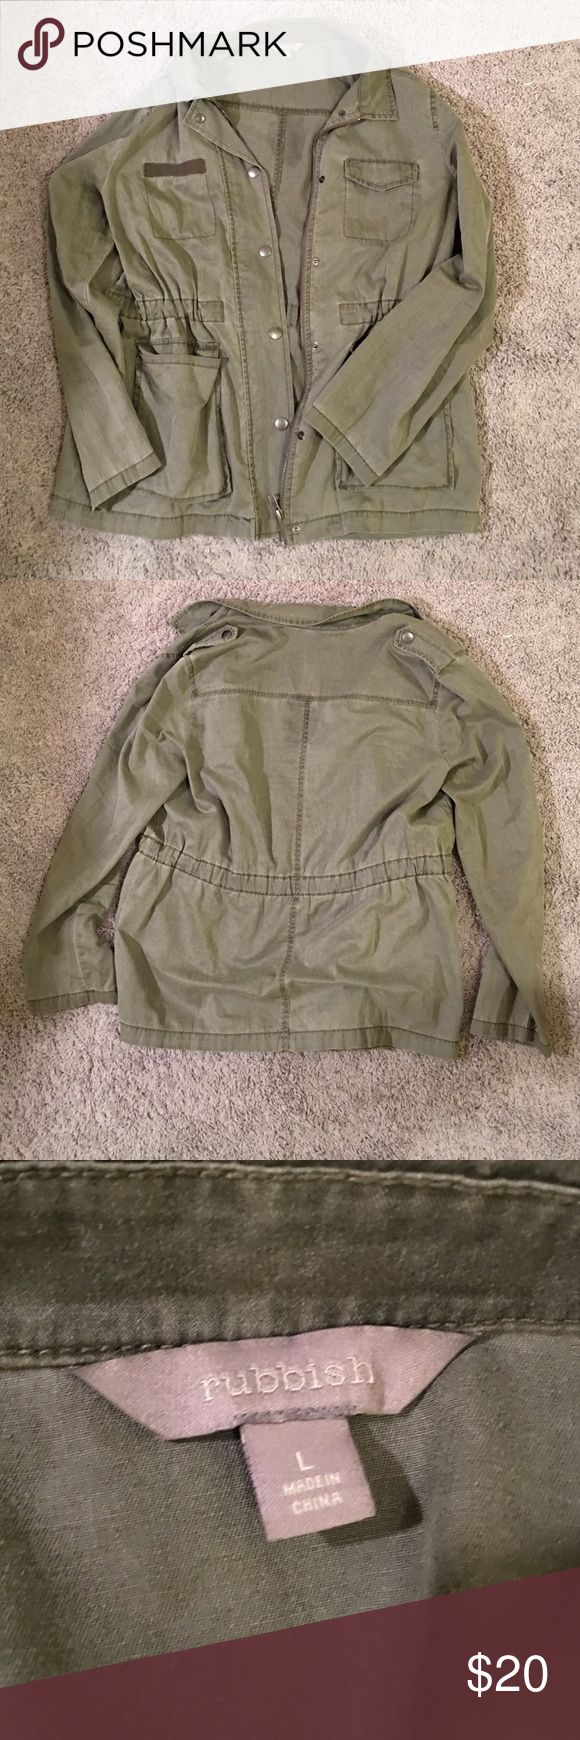 Women's utility jacket Women's green utility jacket. Lightly worn. Size L. Zip up with a draw string in the inside. Rubbish Jackets & Coats Utility Jackets